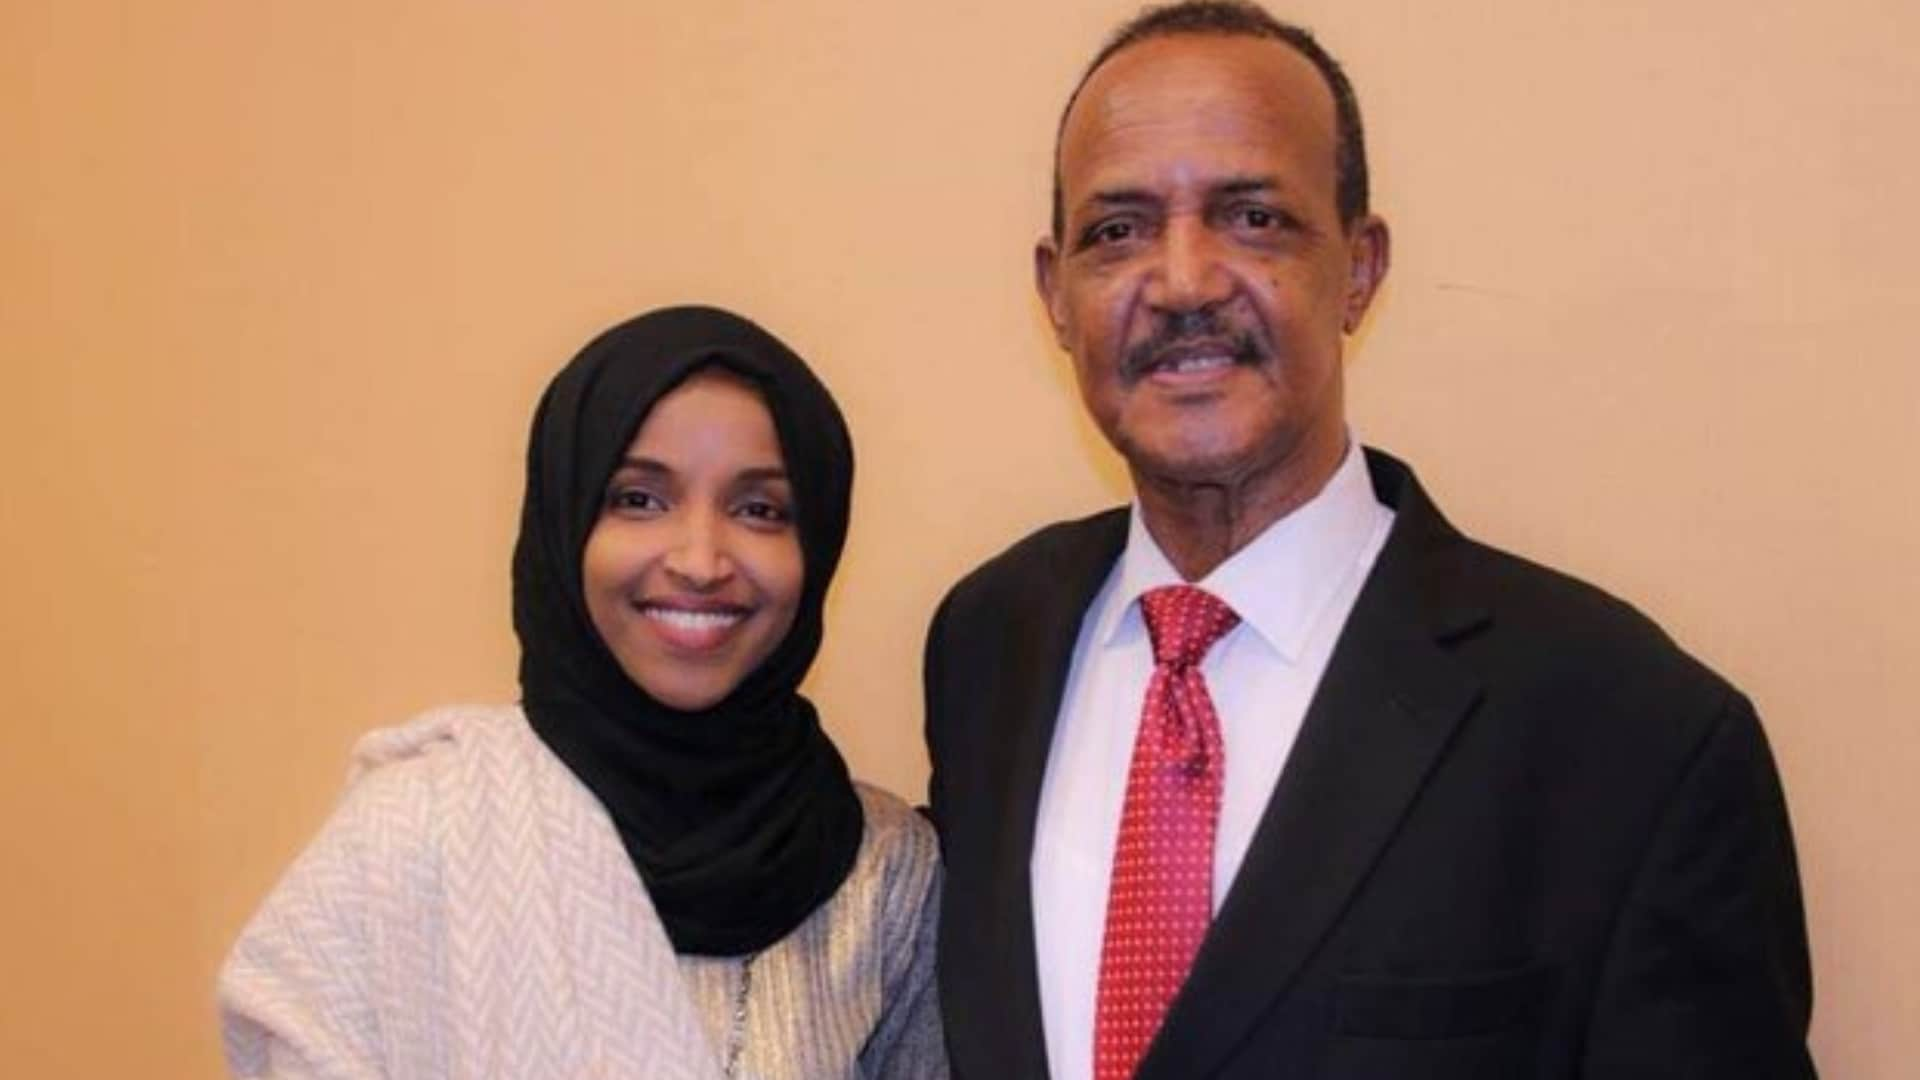 Rep. Ilhan Omar's father dies from COVID-19 complications ...Ilhan Omar Primary 2020